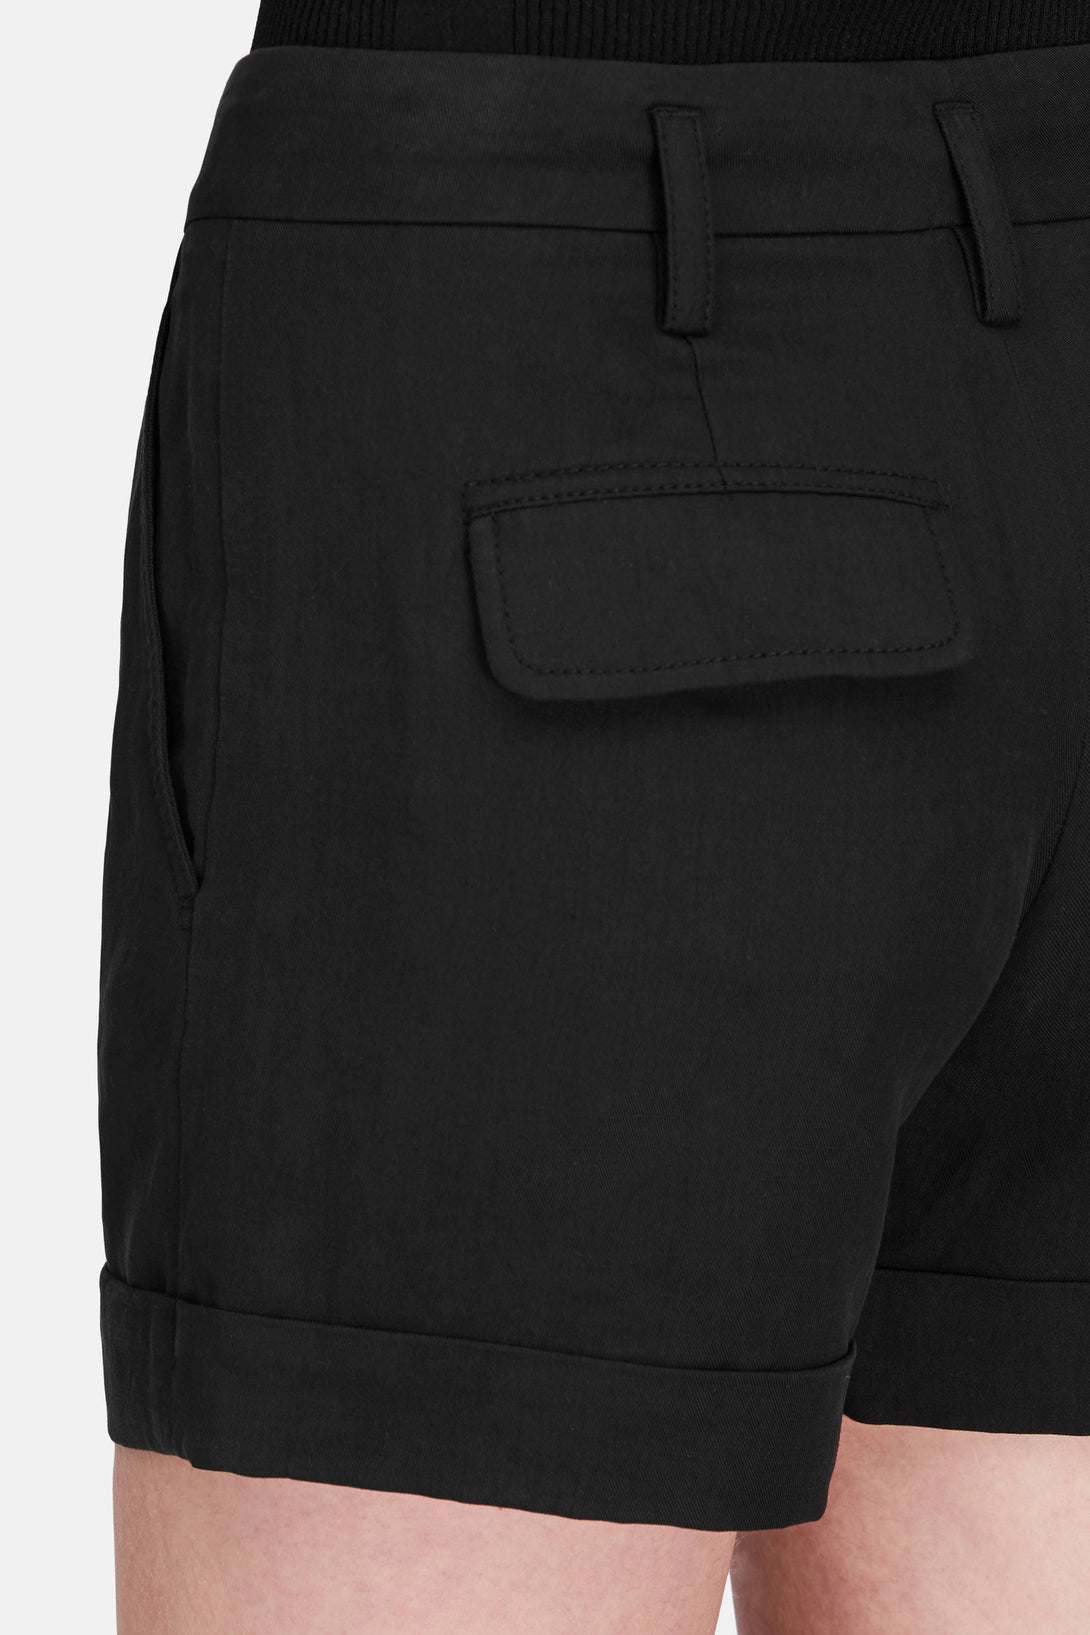 Slouchy Short - Black – The Line